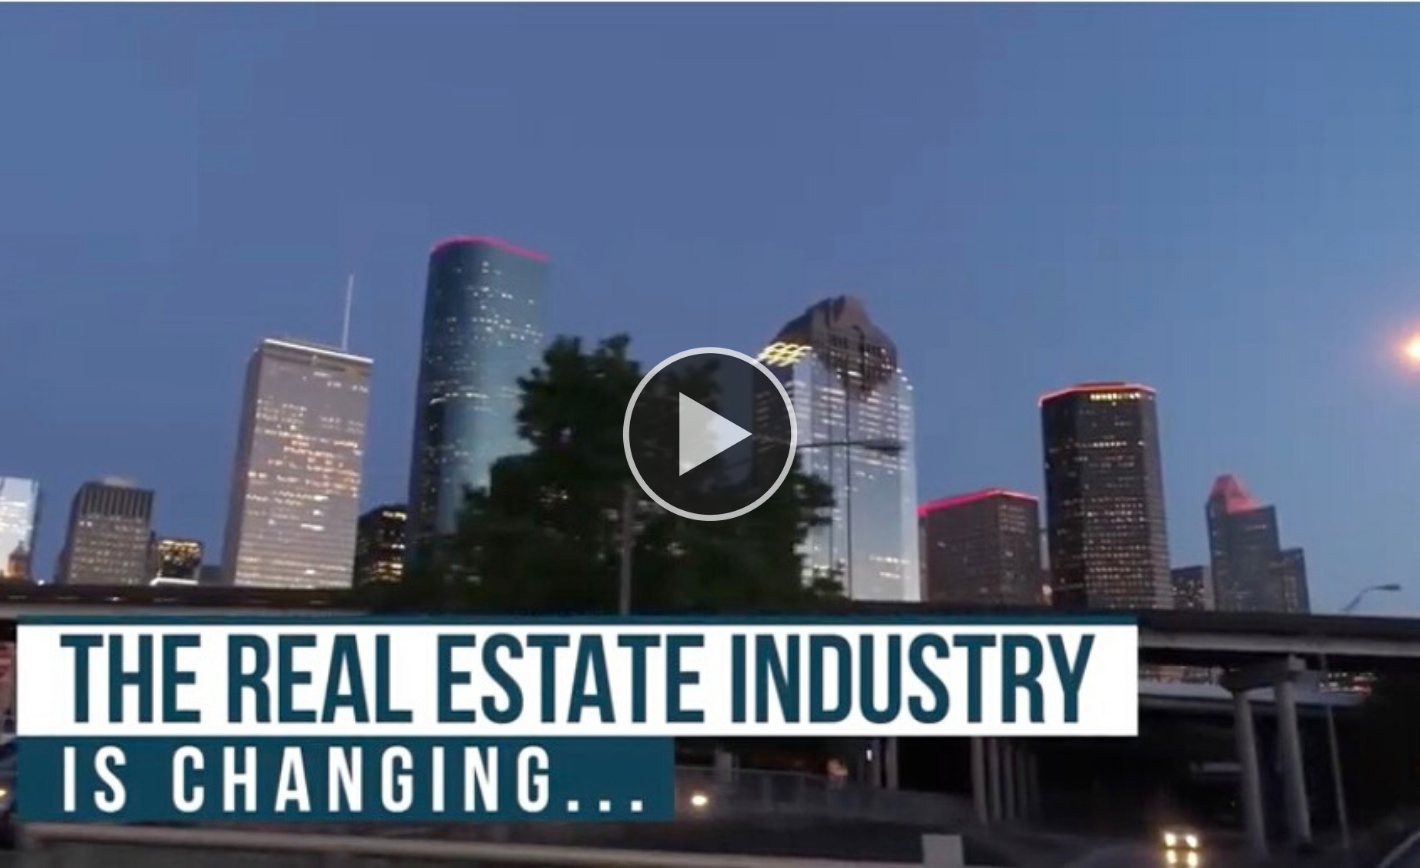 Real estate is changing. How are you getting ahead of the shifting market and providing more value to clients?